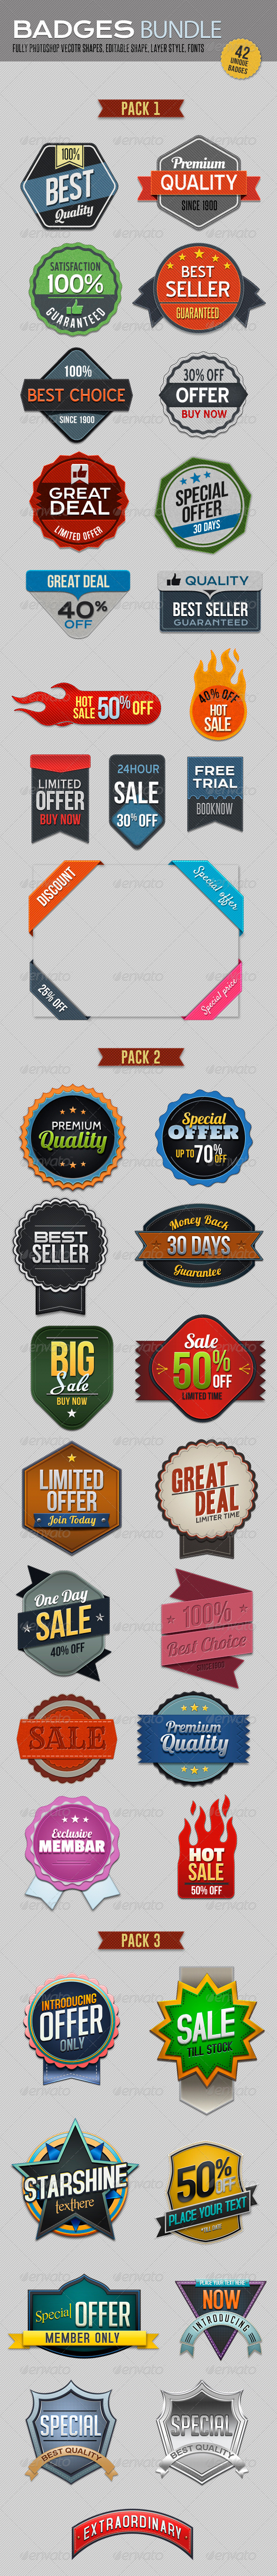 GraphicRiver Badges Bundle 6574453